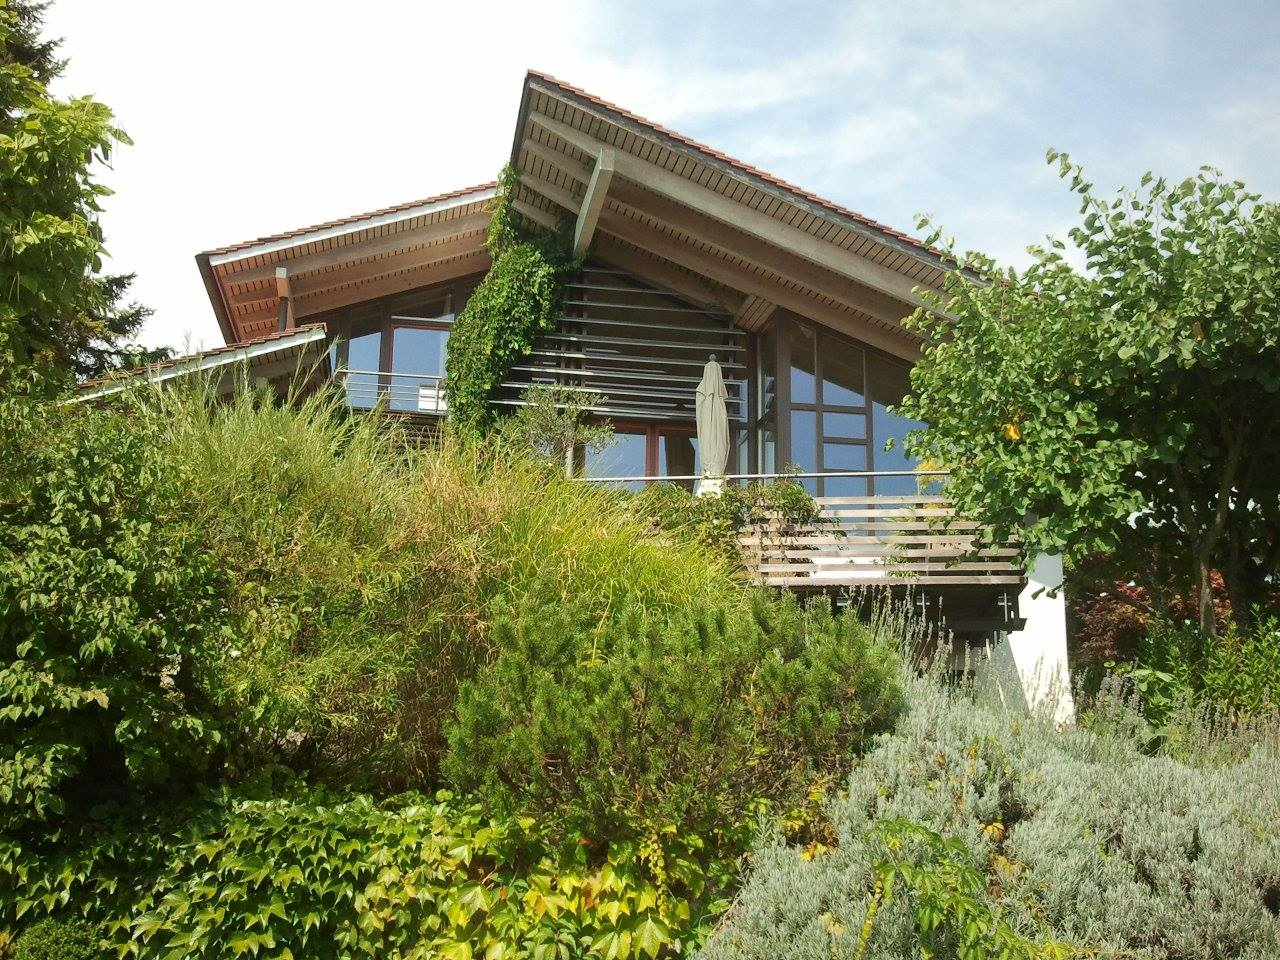 Holiday apartments on Lake Constance: Schillerstraße - Exterior View